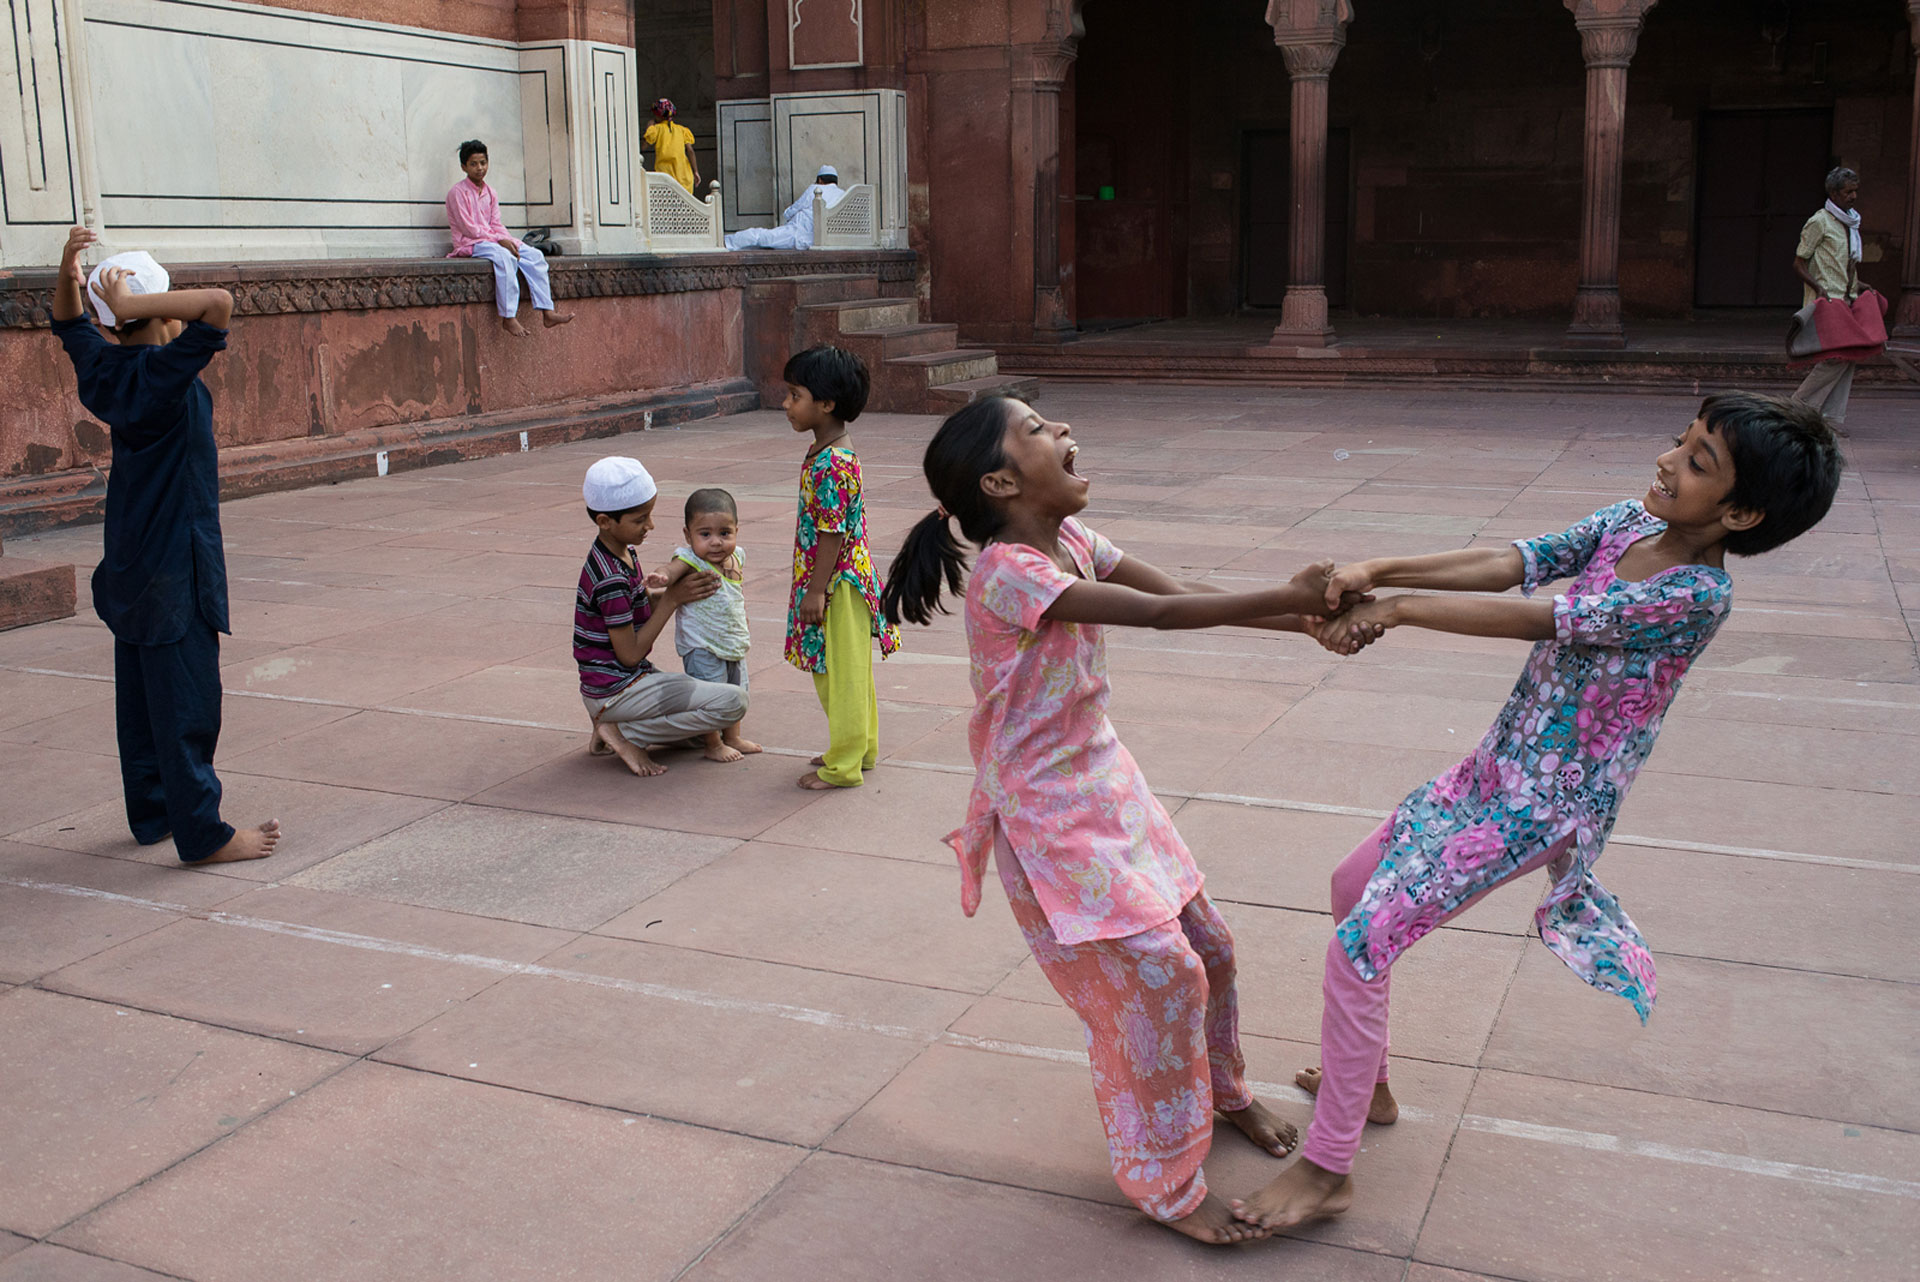 Street Photography in India by Pushkar Raj Sharma: Two girls dancing happily